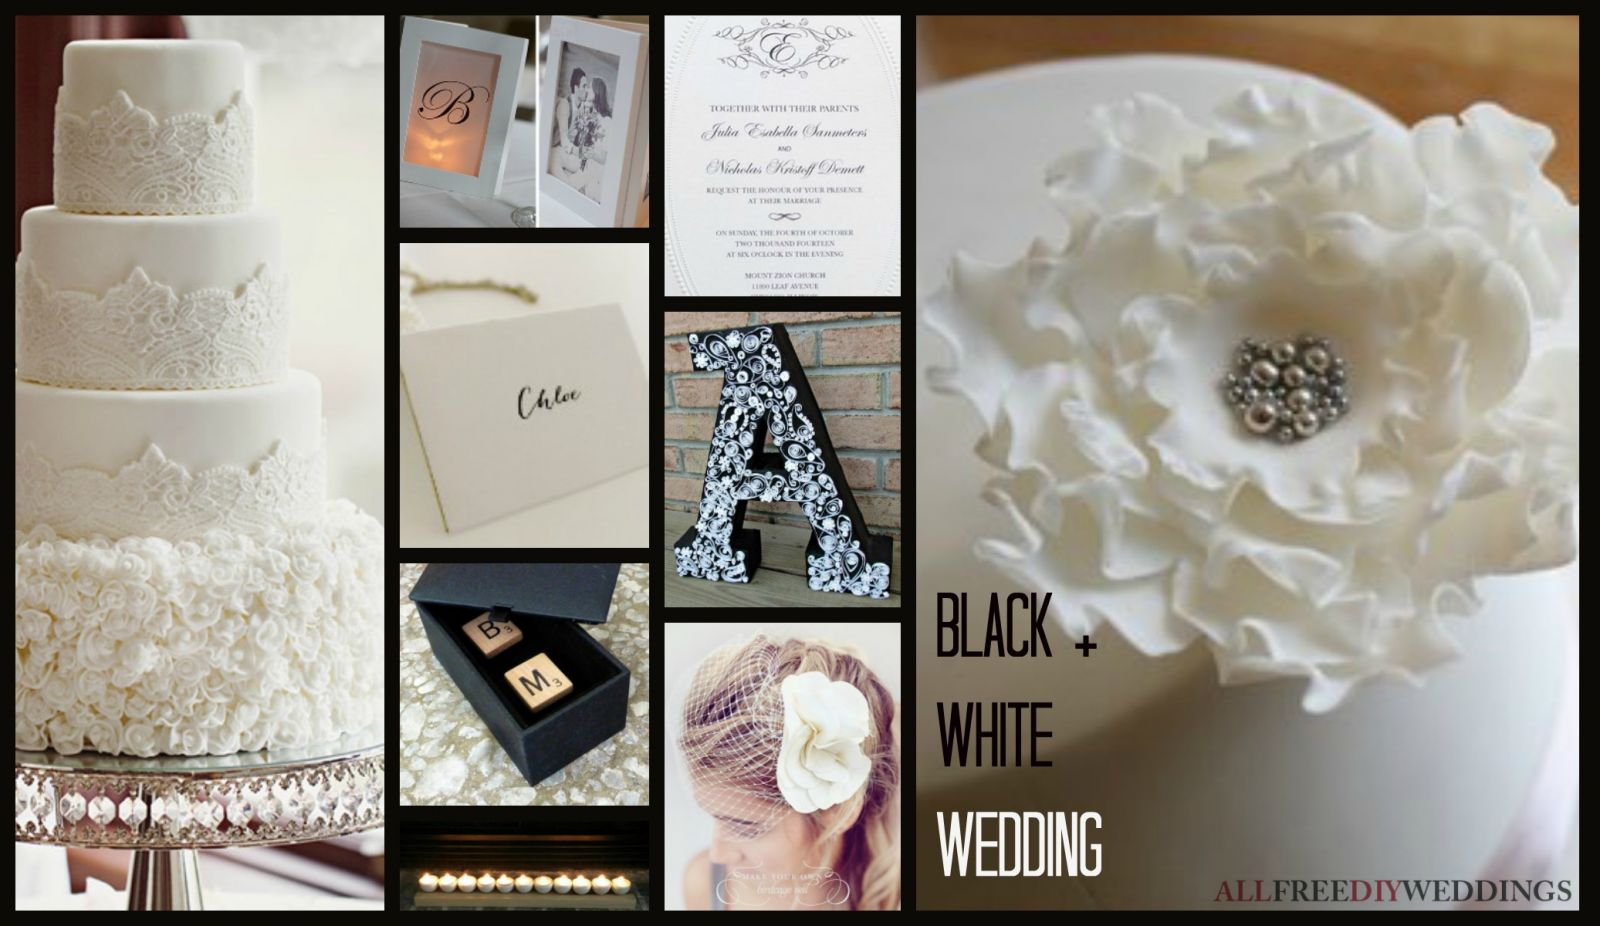 Wedding Color Schemes: Black and White